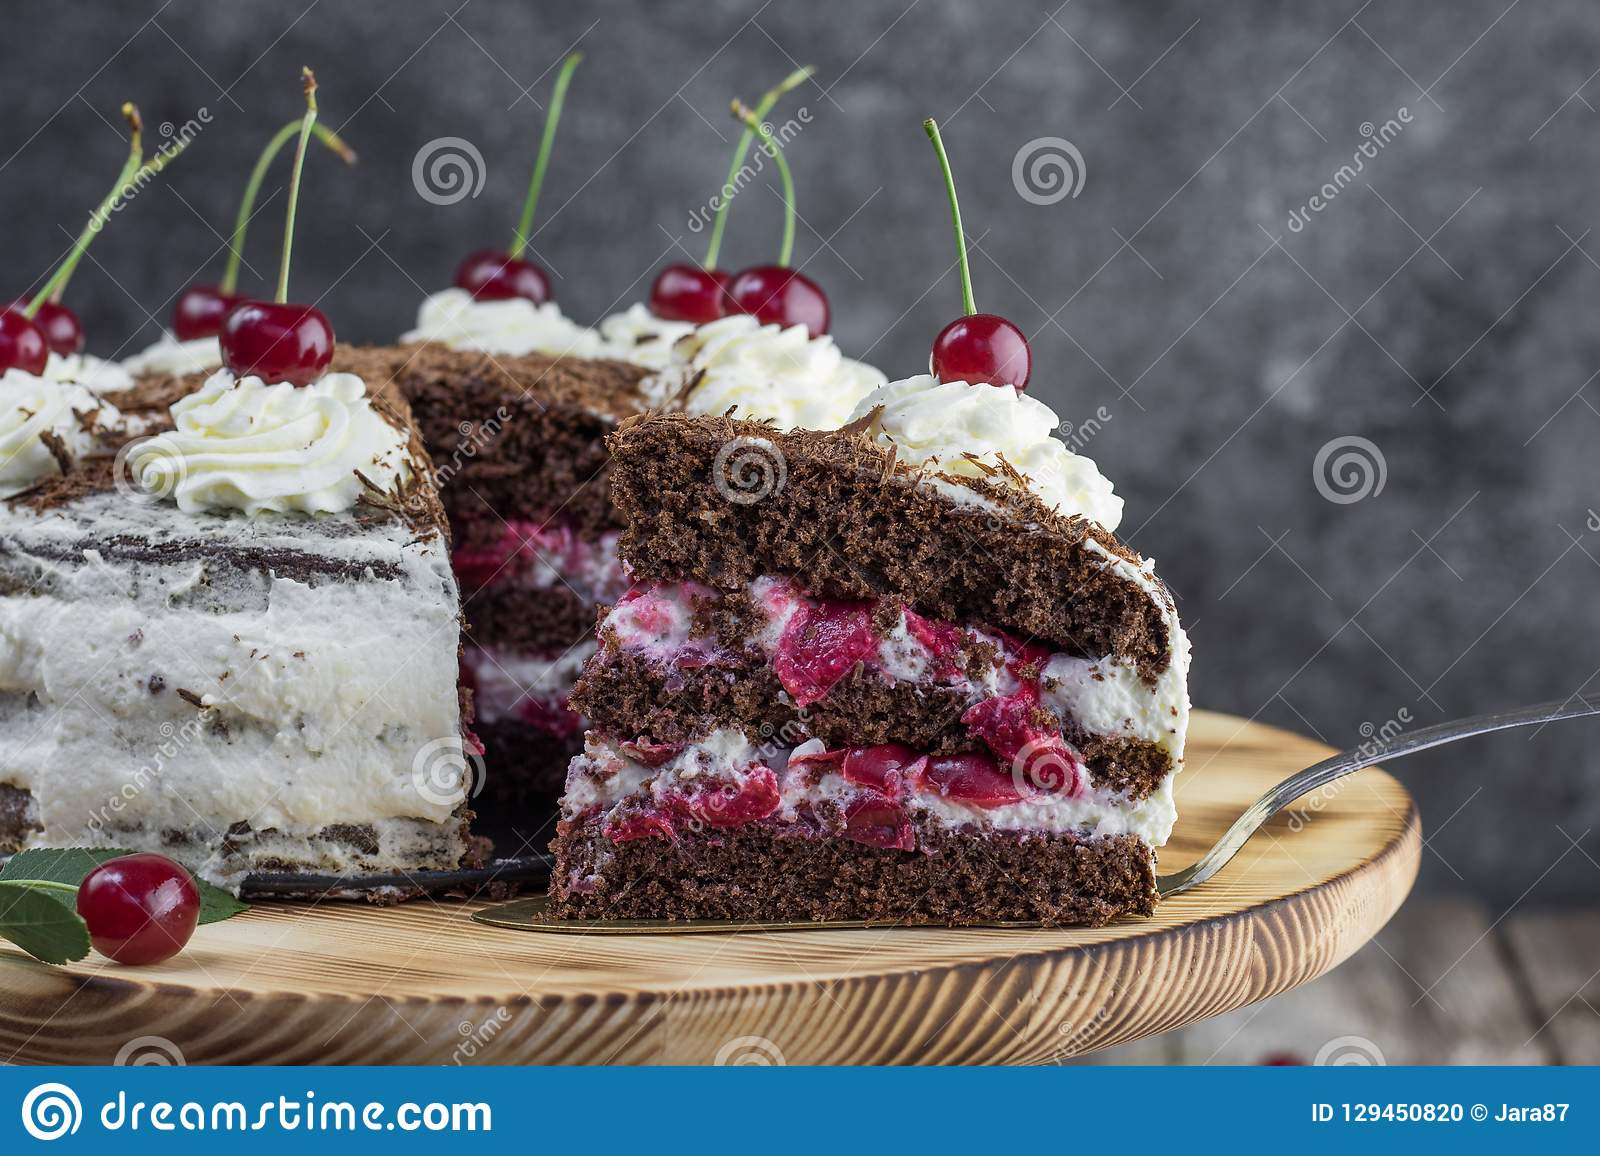 Detail on a Slice of a Black forest cake, or traditional austria schwarzwald cake from dark chocolate and sour cherries